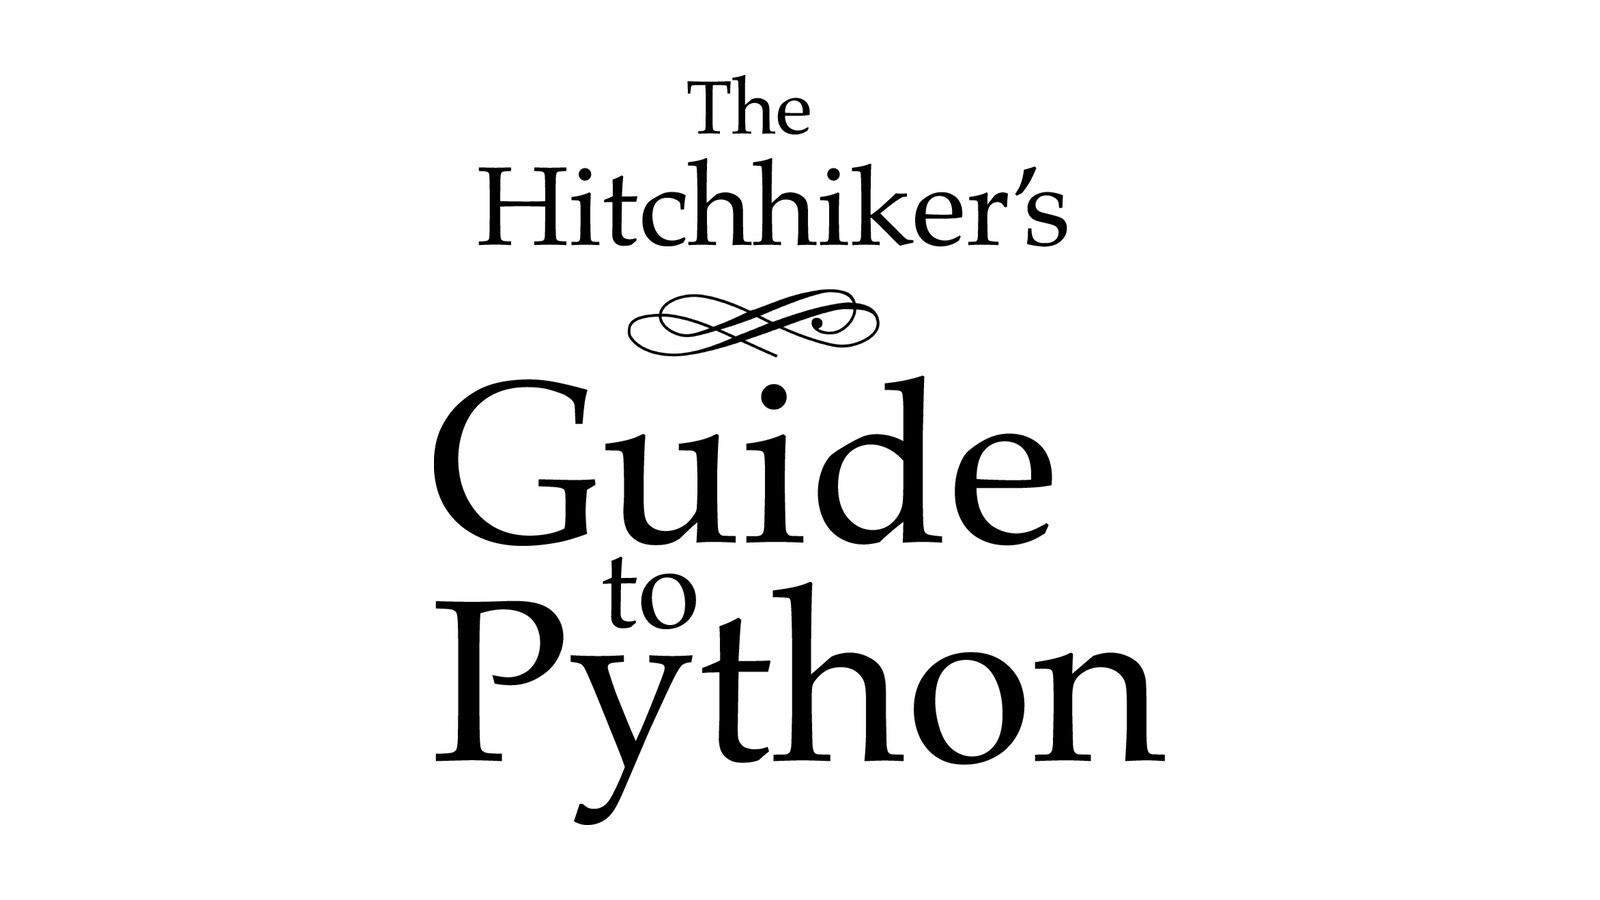 Installing Python 2 on Windows — The Hitchhiker's Guide to Python